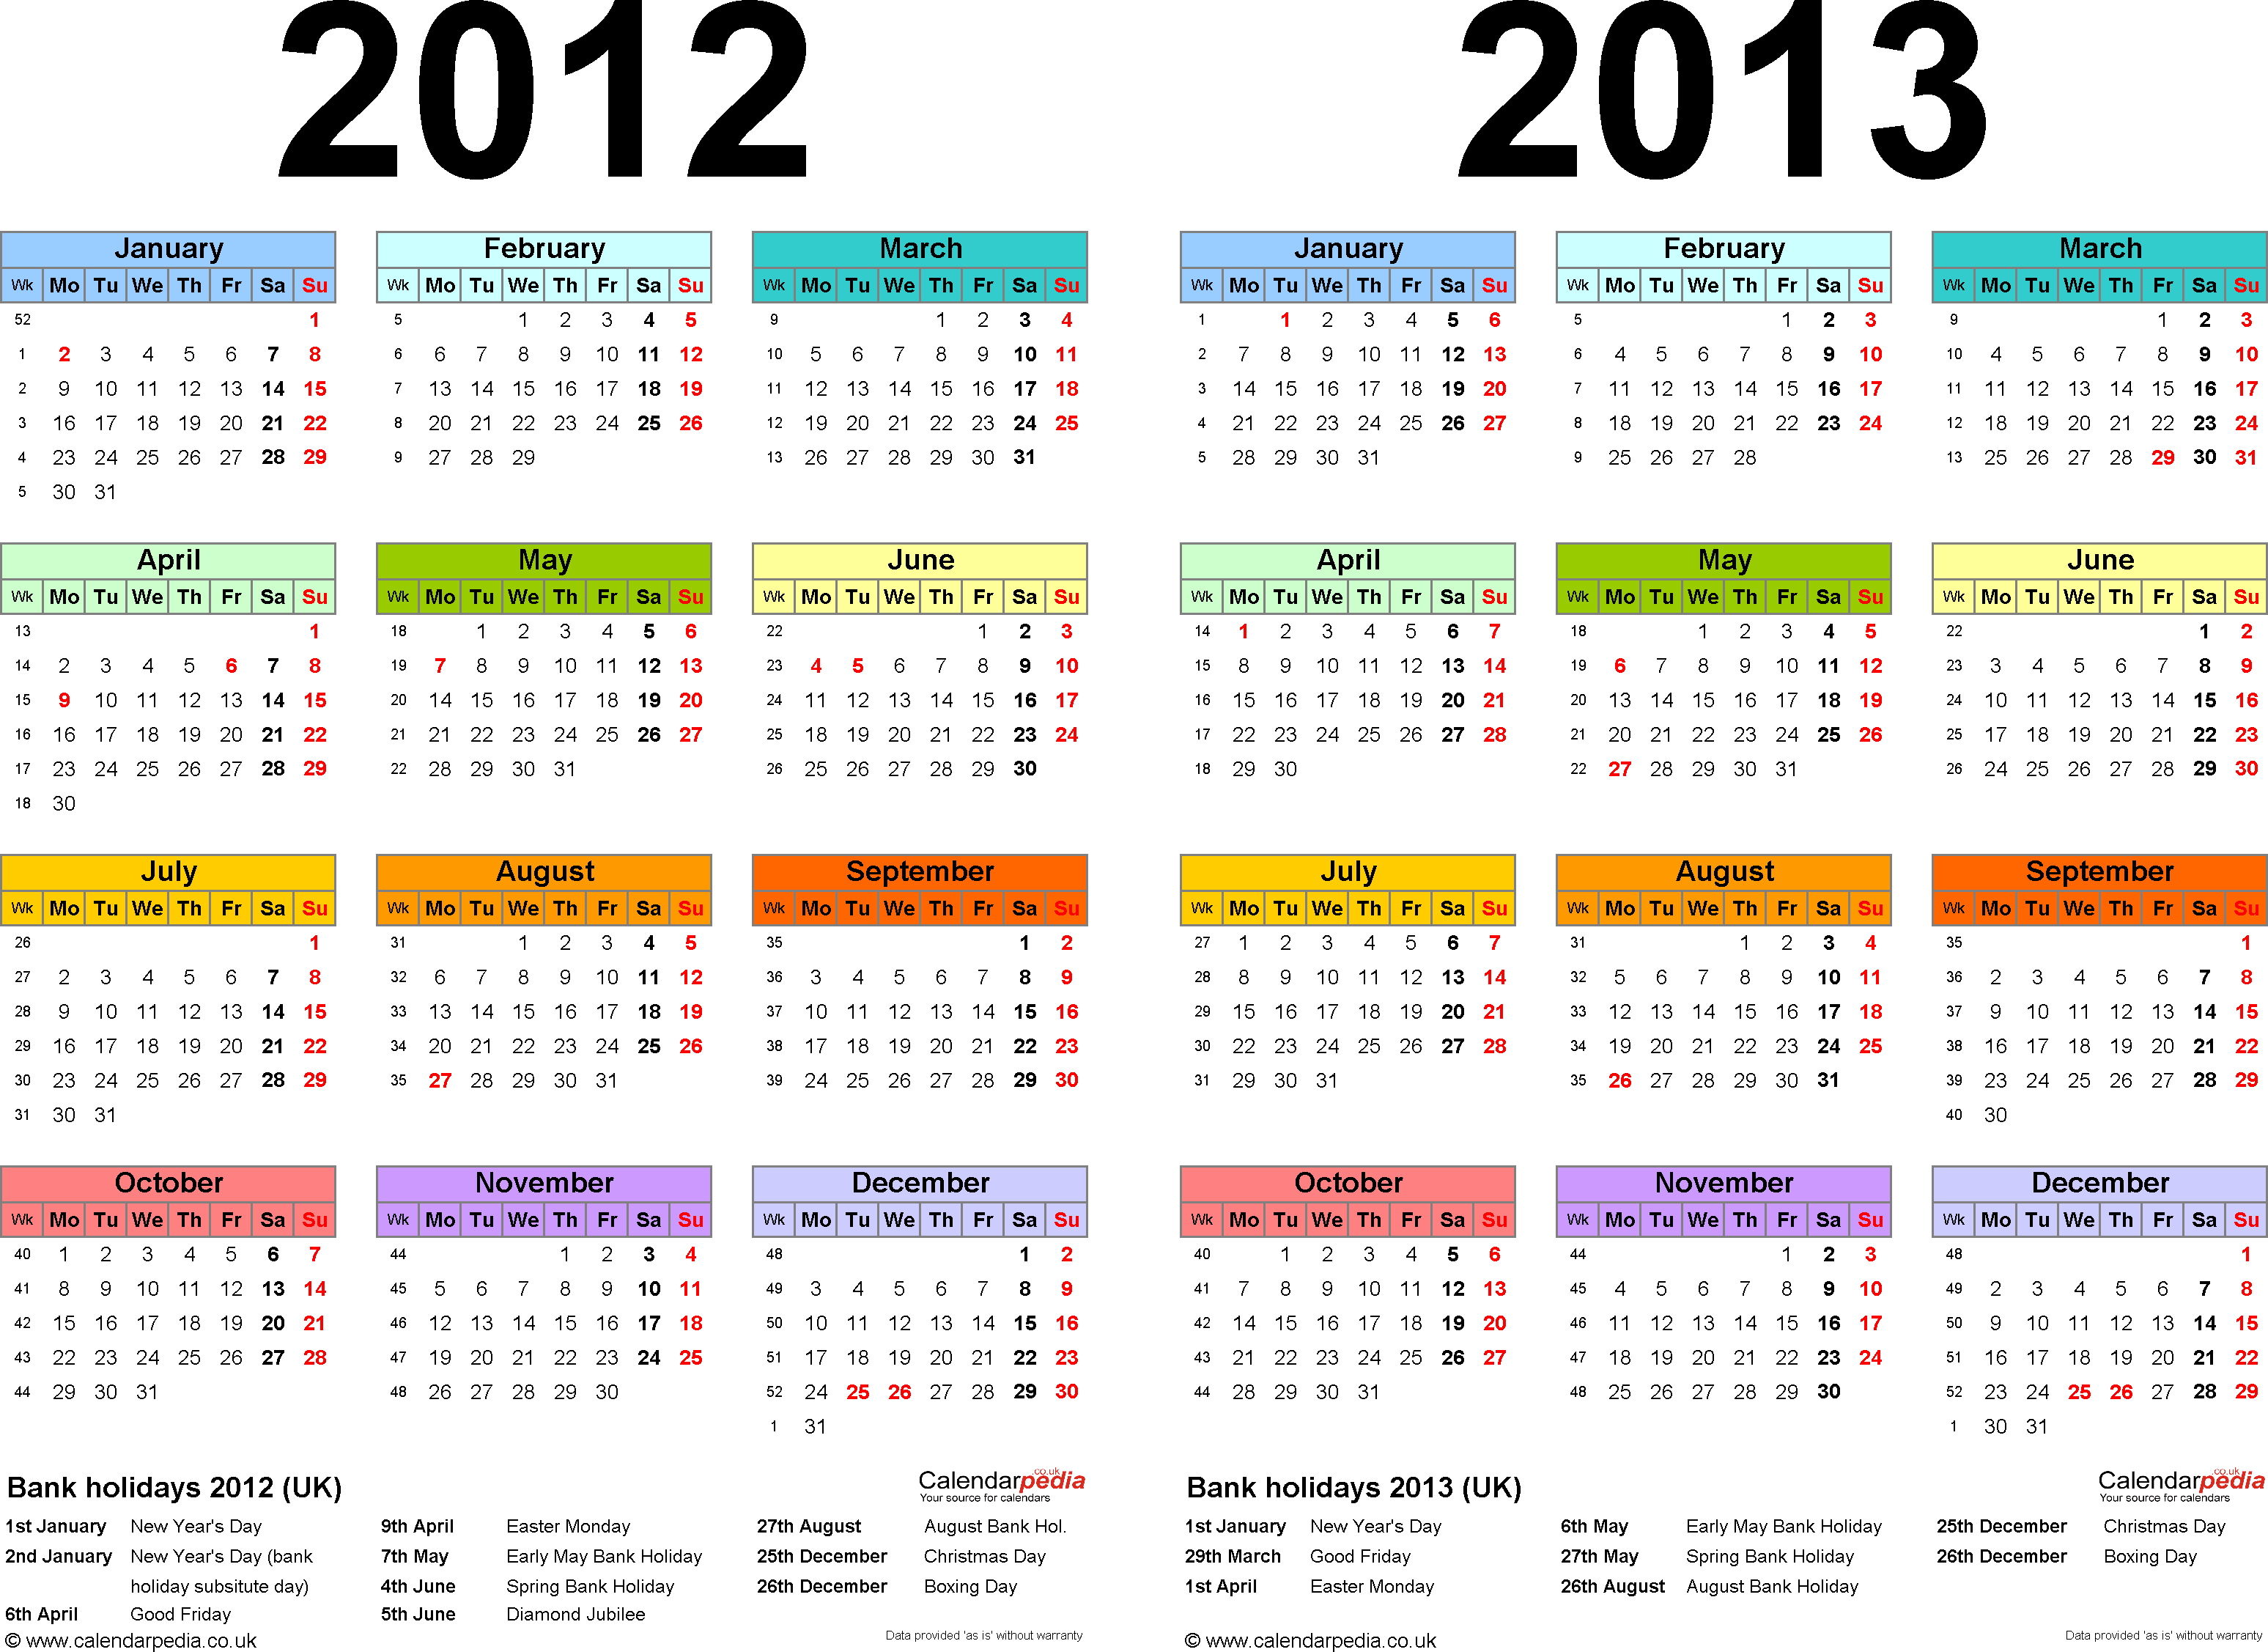 Download Template 1: Word template for two year calendar 2012/2013 in colour (landscape orientation, 1 page, A4)